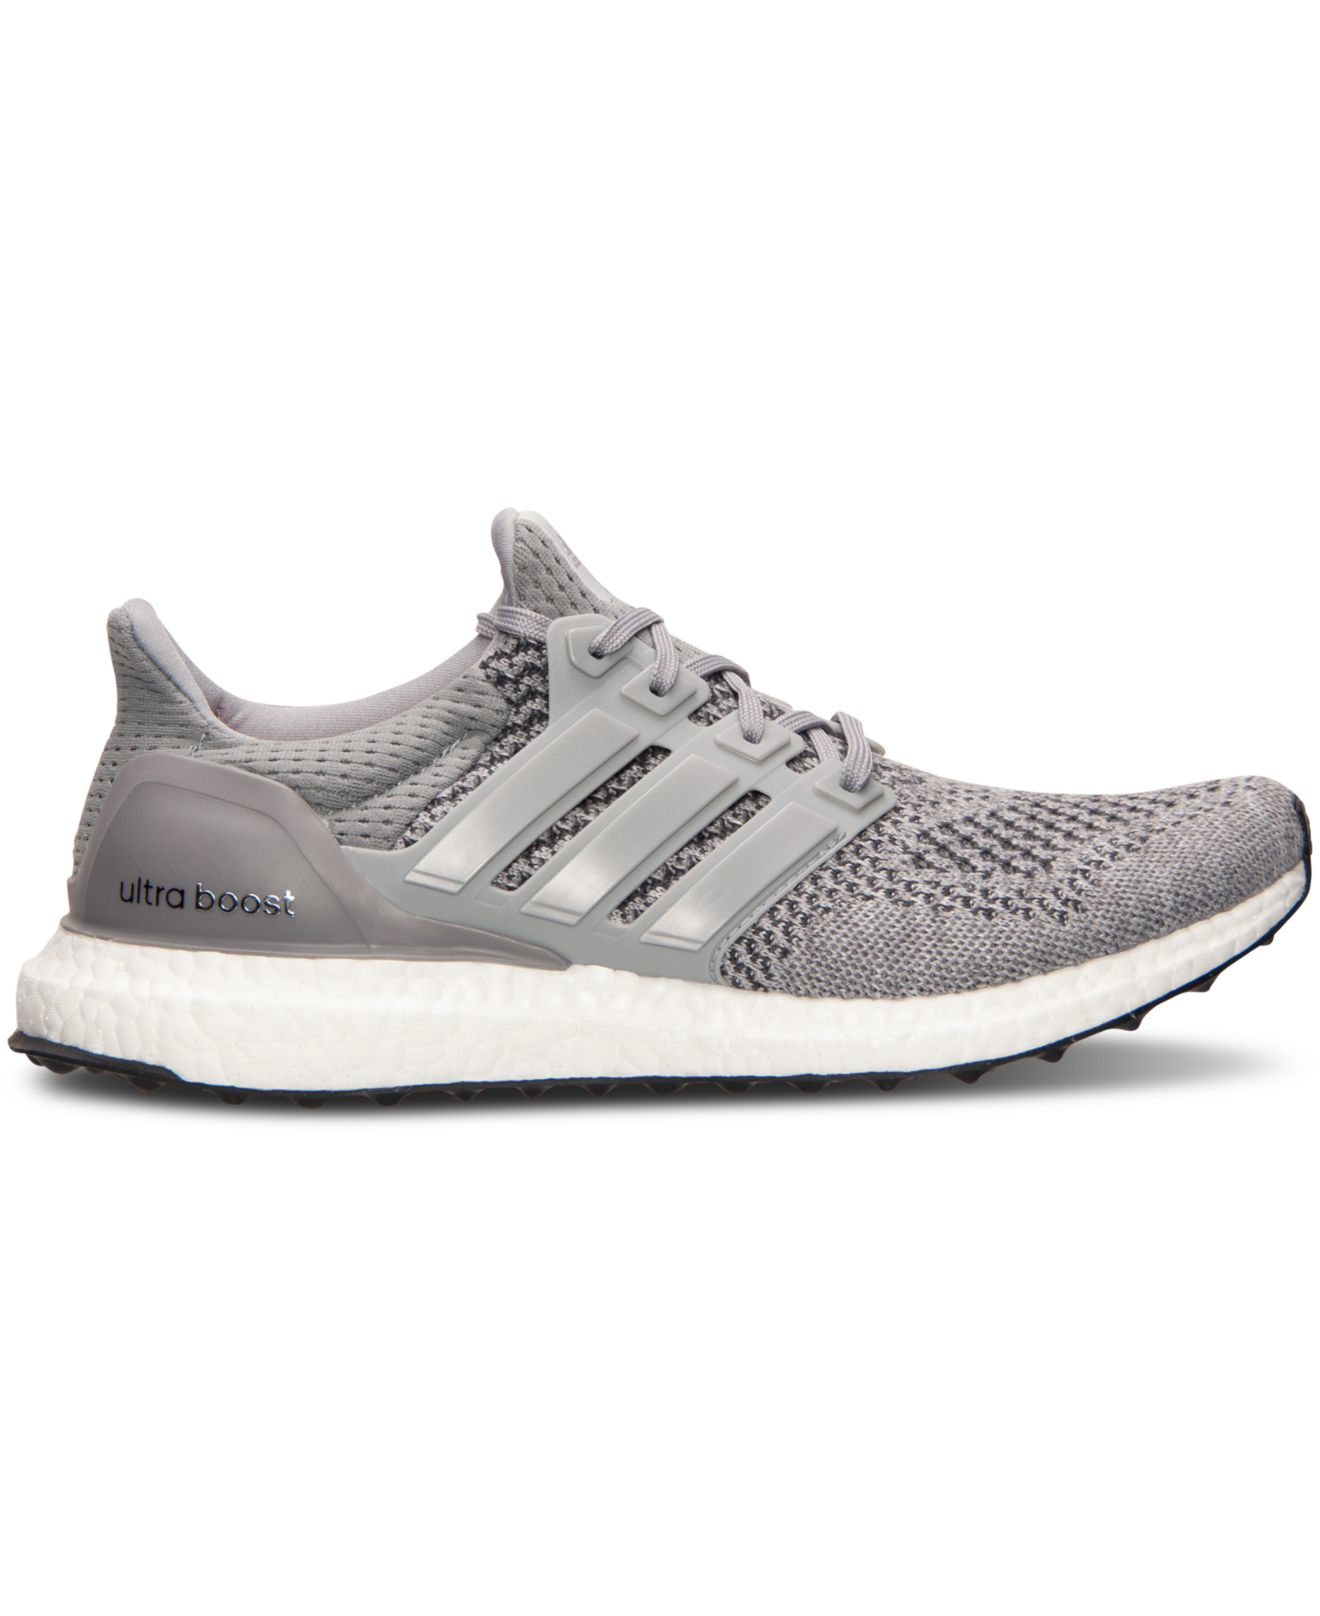 4131939f6 ... promo code for lyst adidas mens ultra boost running sneakers from finish  line in 12e0f 3c7c1